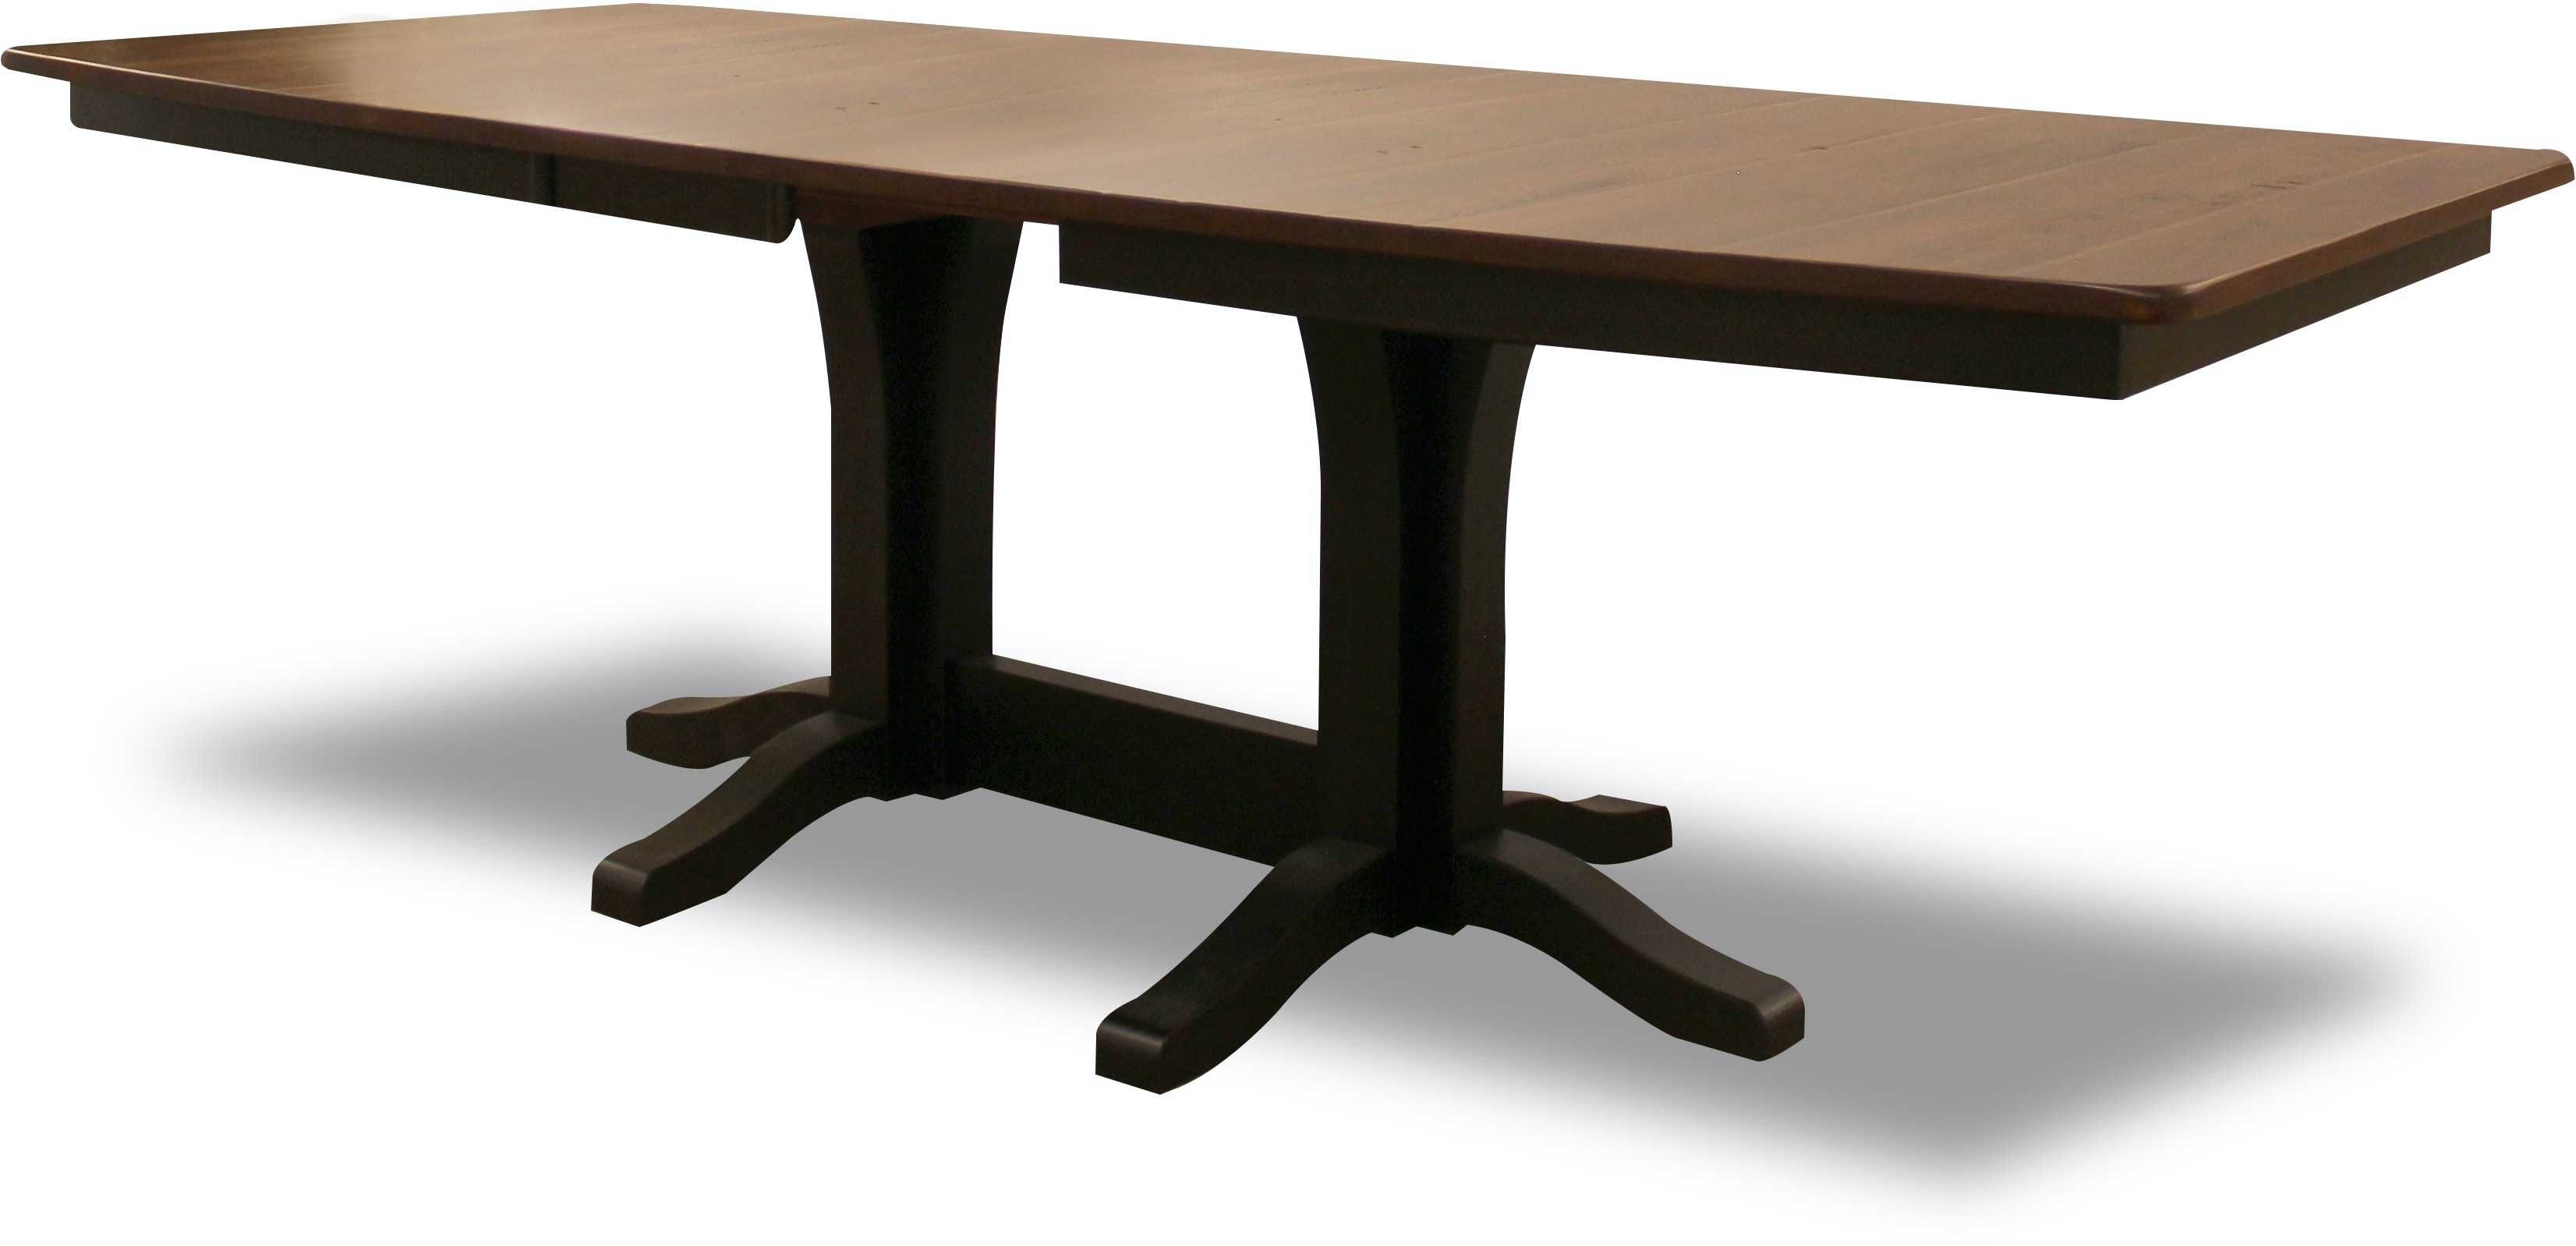 daniel s amish dining room millsdale dining table 513694 daniel s amish dining room millsdale dining table 513694 at kittle s furniture